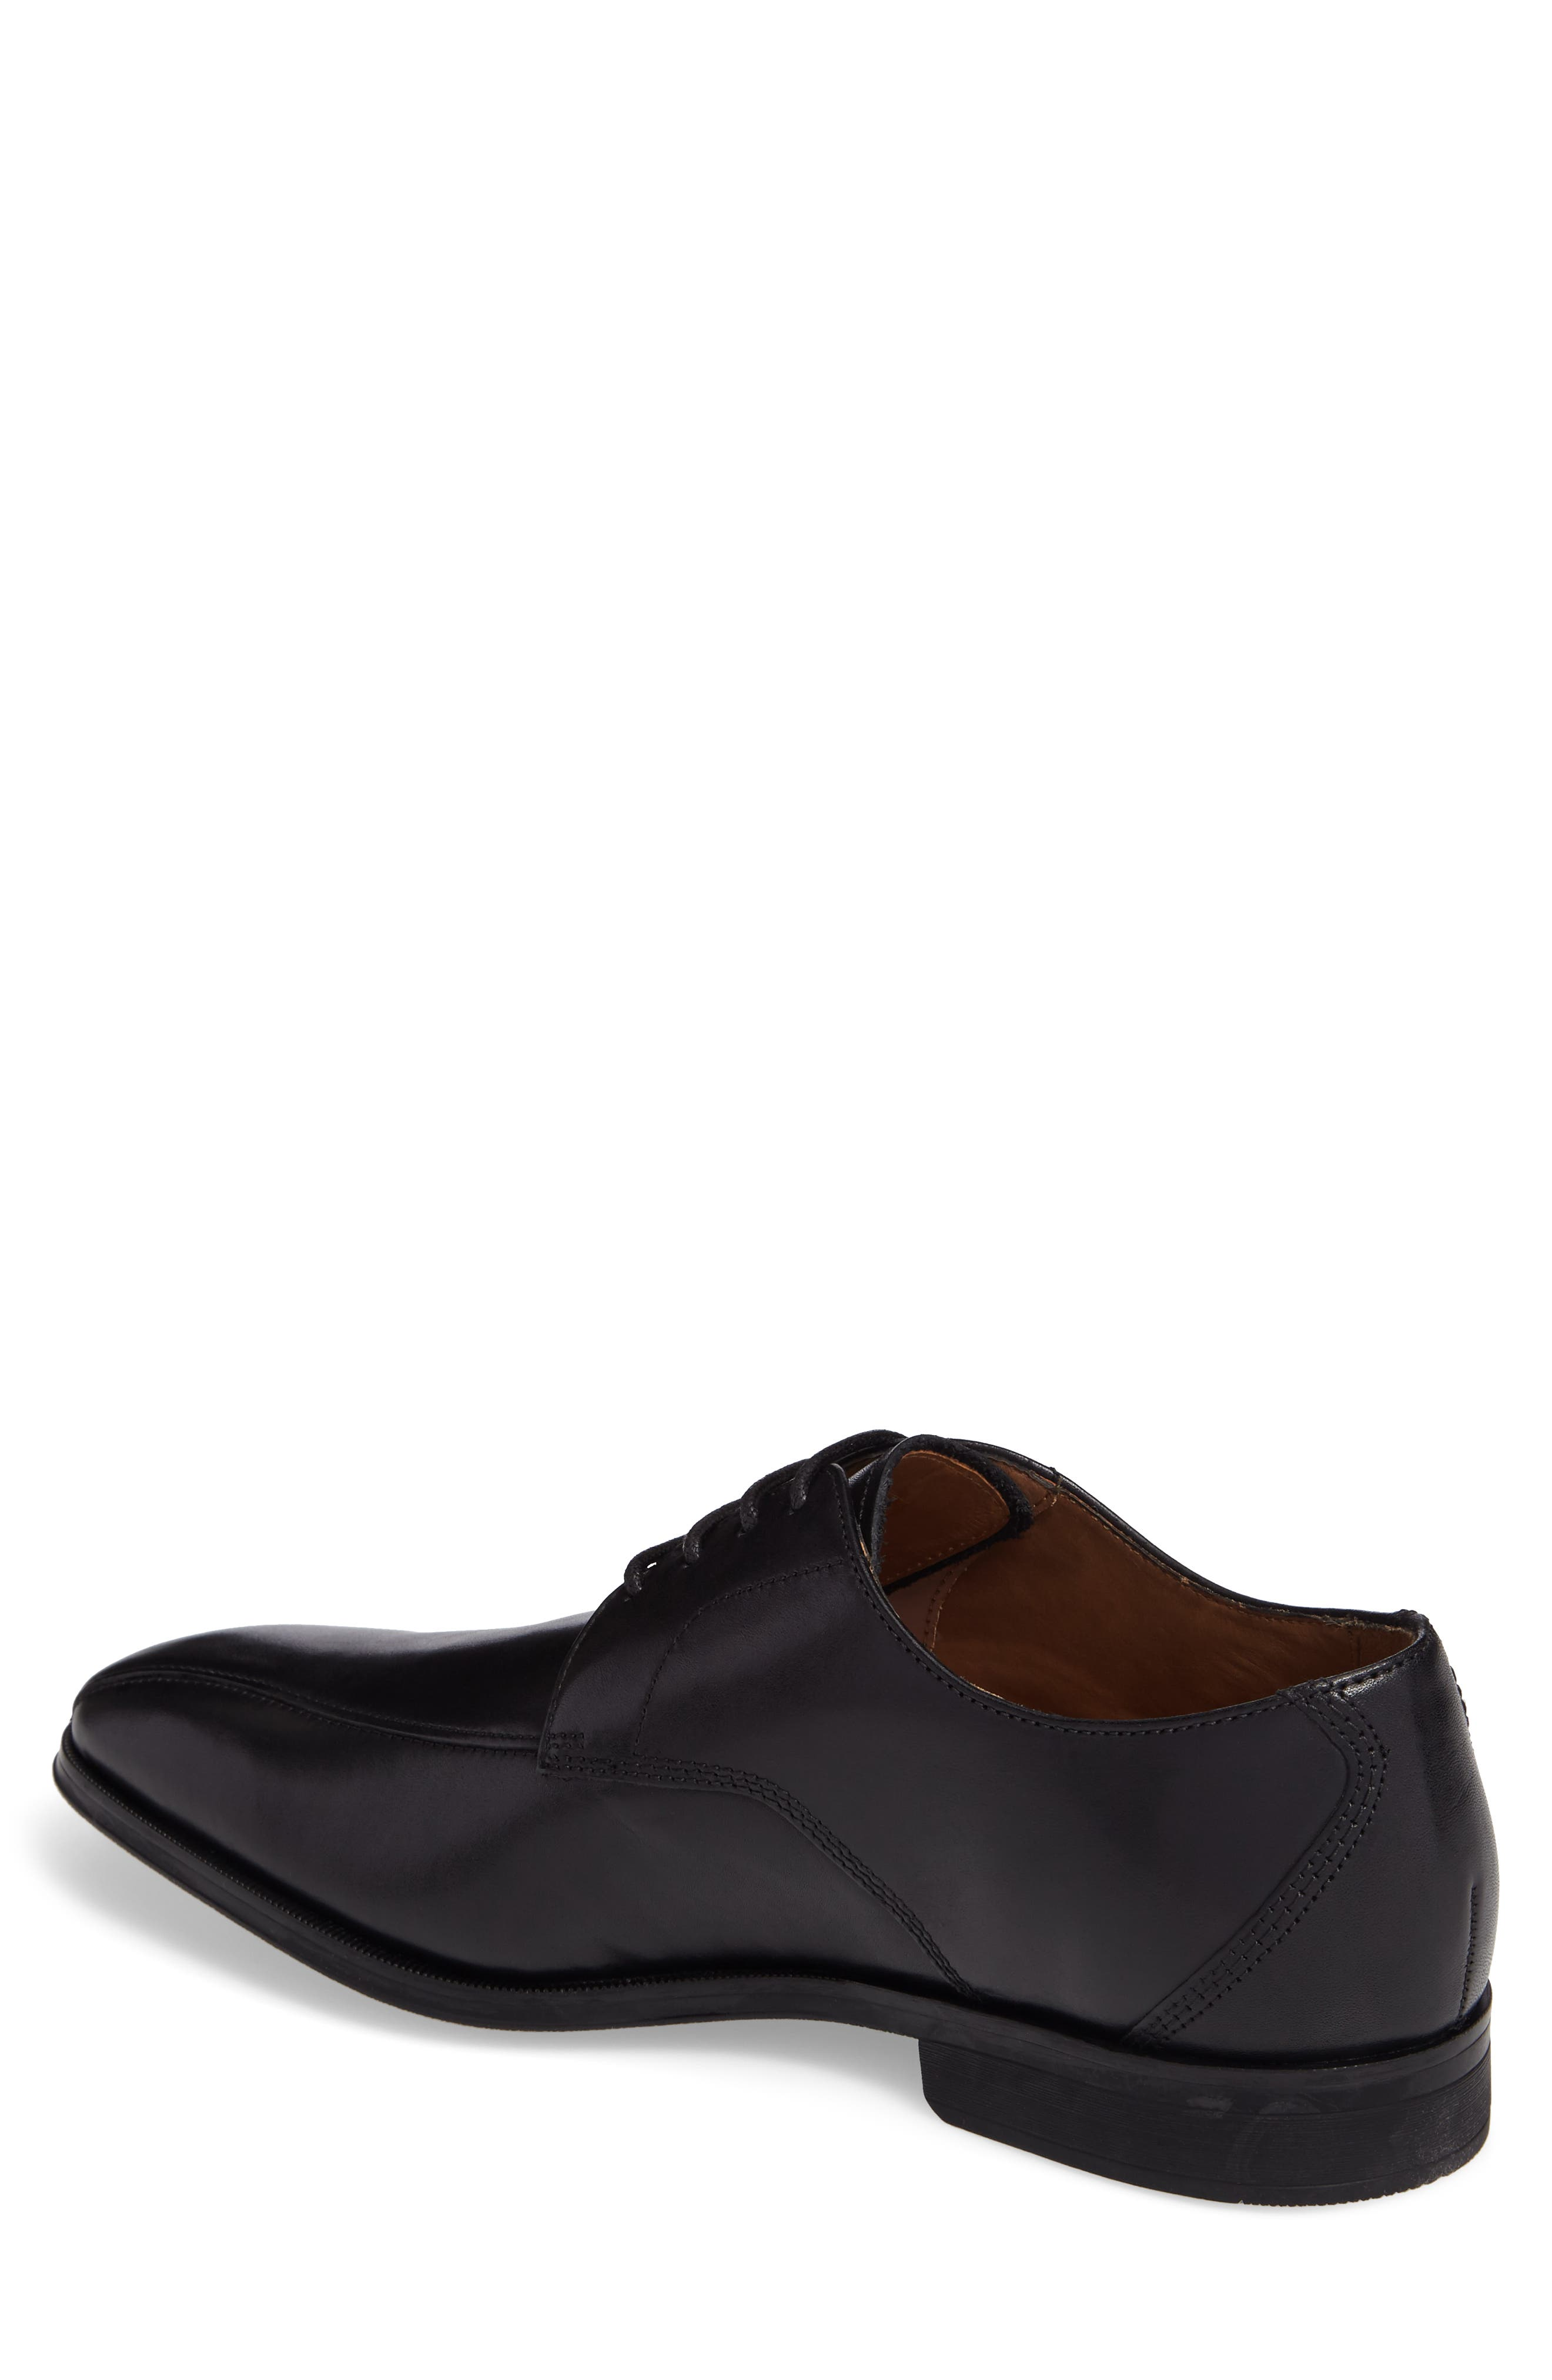 Clarks Gilman Bicycle Toe Derby,                             Alternate thumbnail 2, color,                             Black Leather